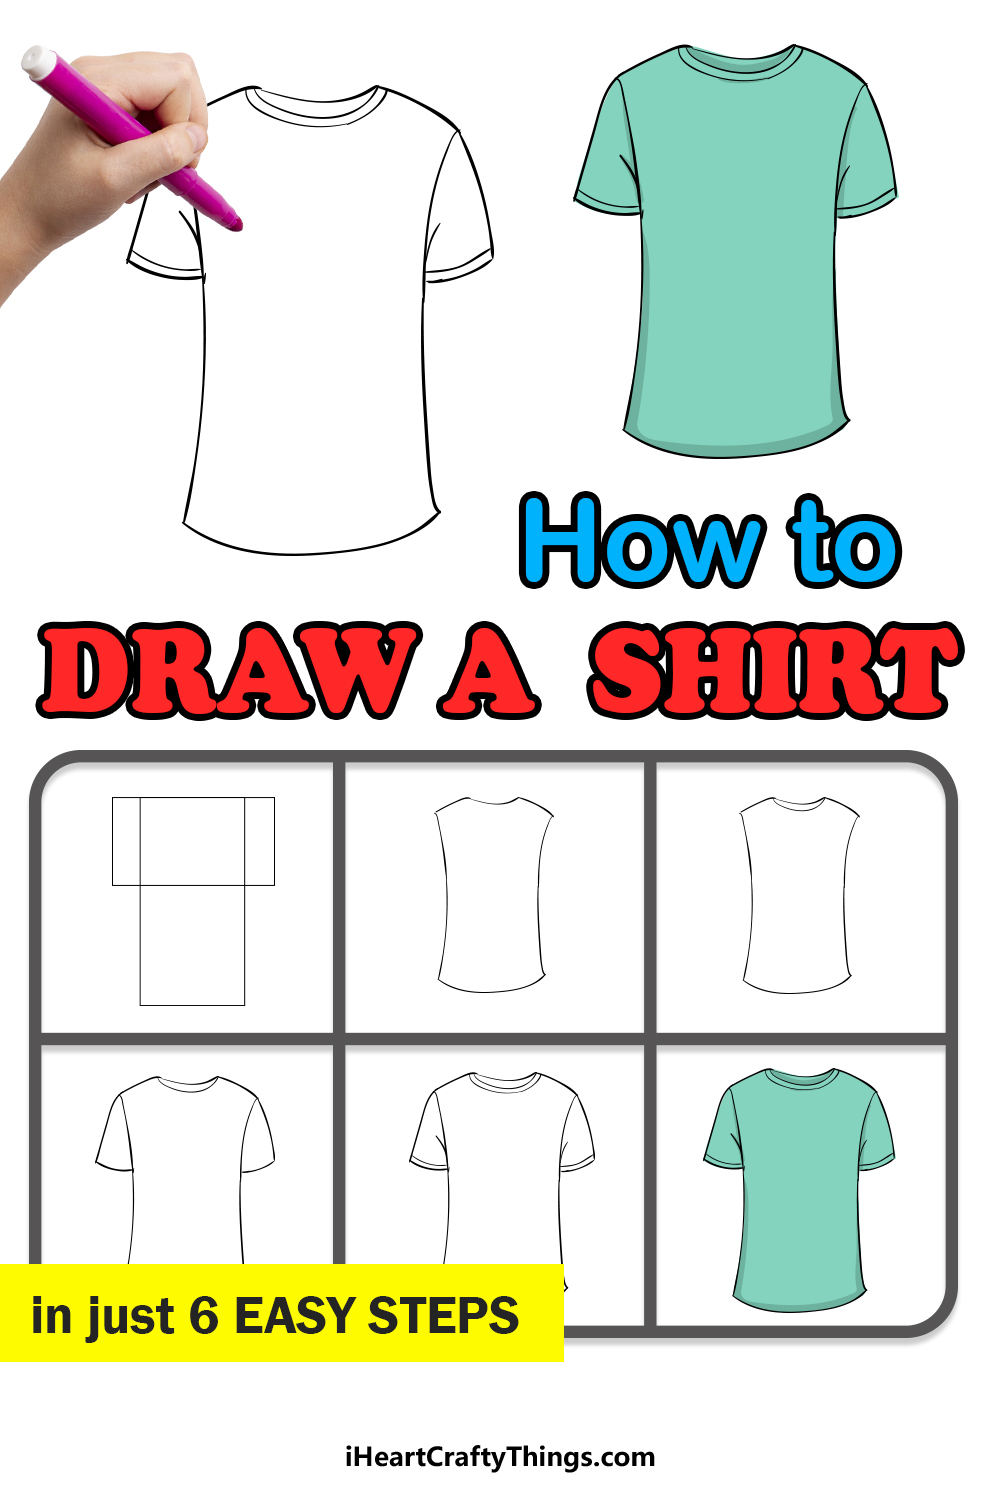 how to draw a shirt in 6 easy steps